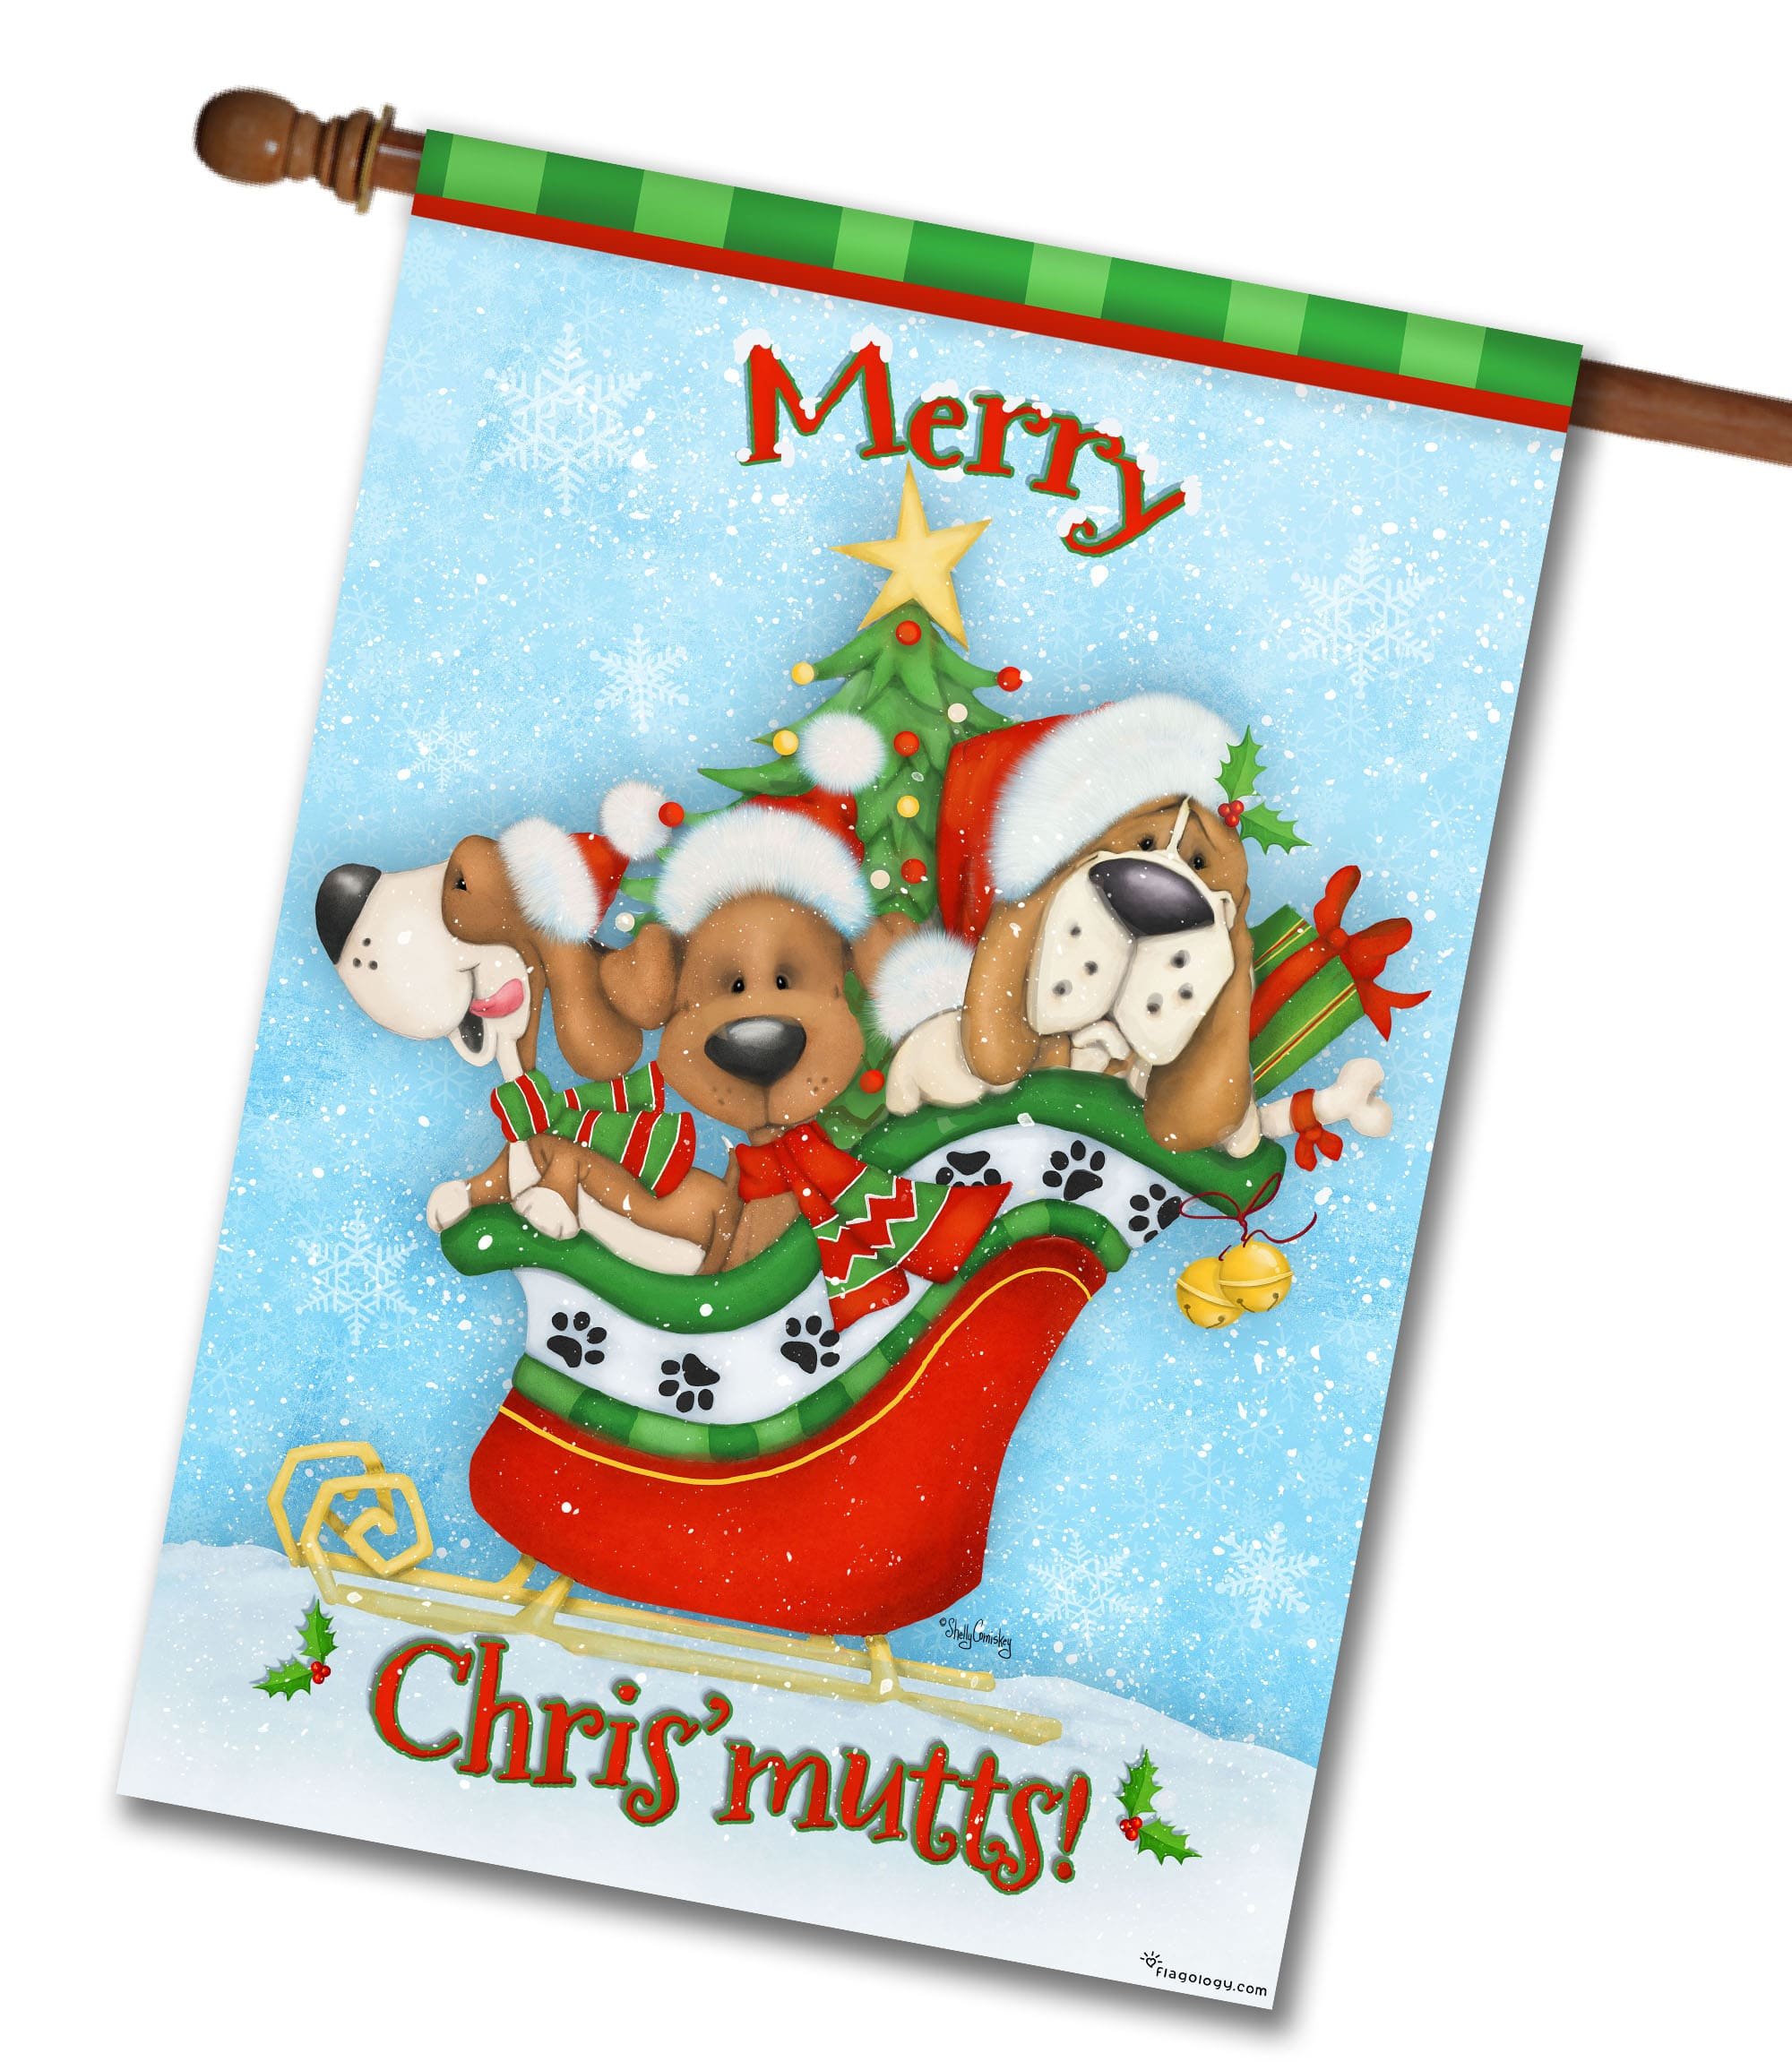 merry chrismutts house flag 28 x